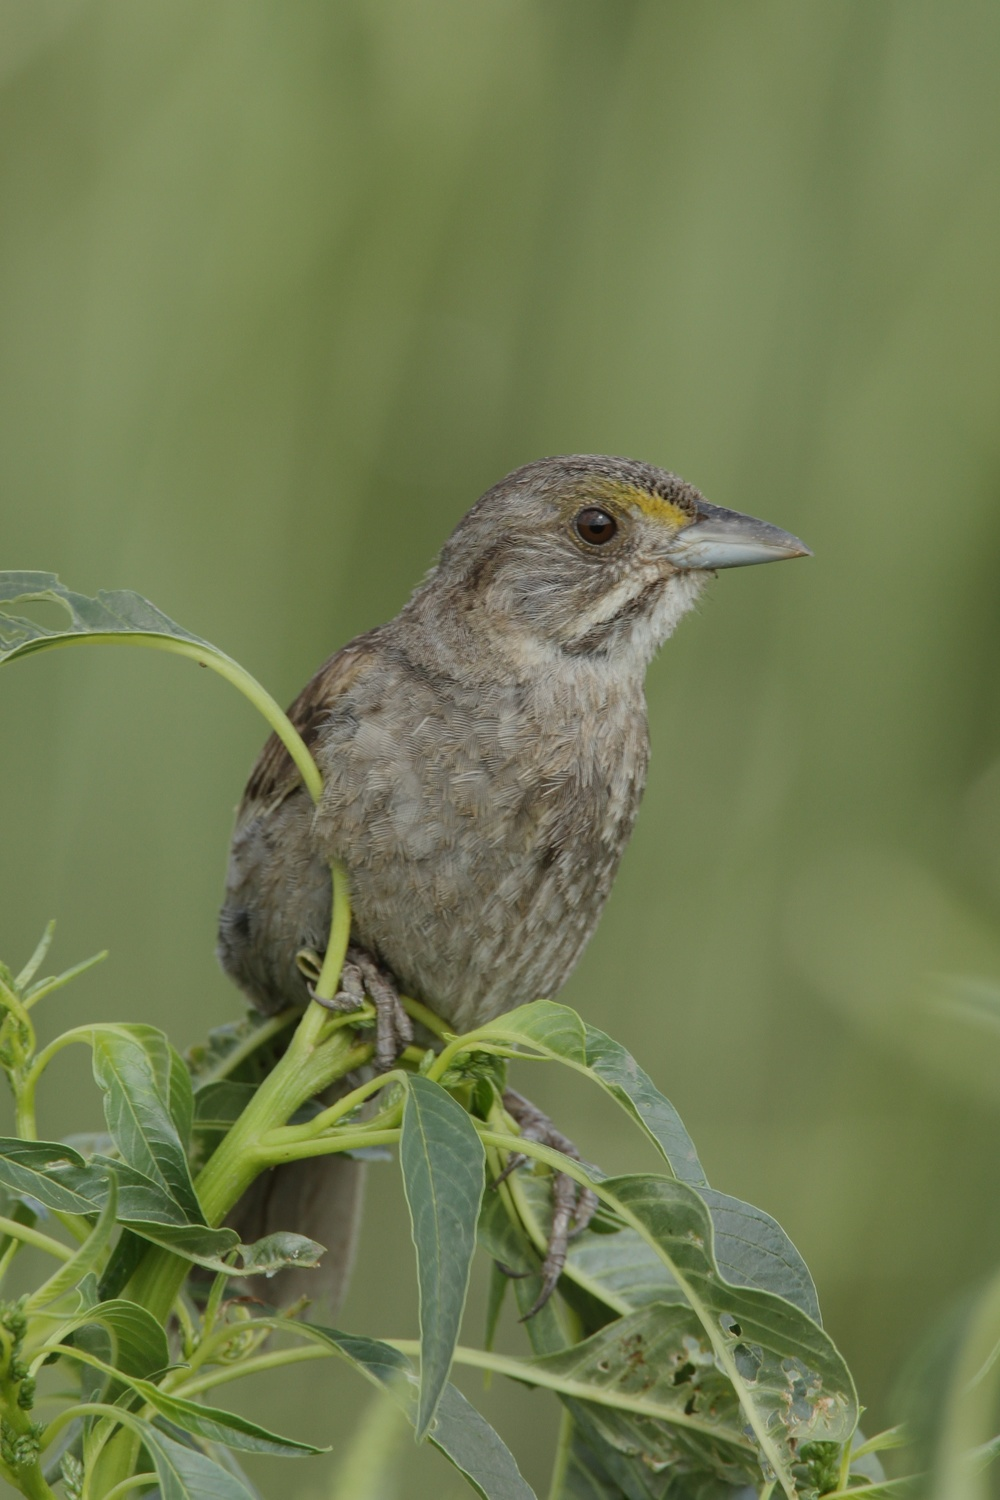 Seaside Sparrow, West Pointe a la Hache, Louisiana